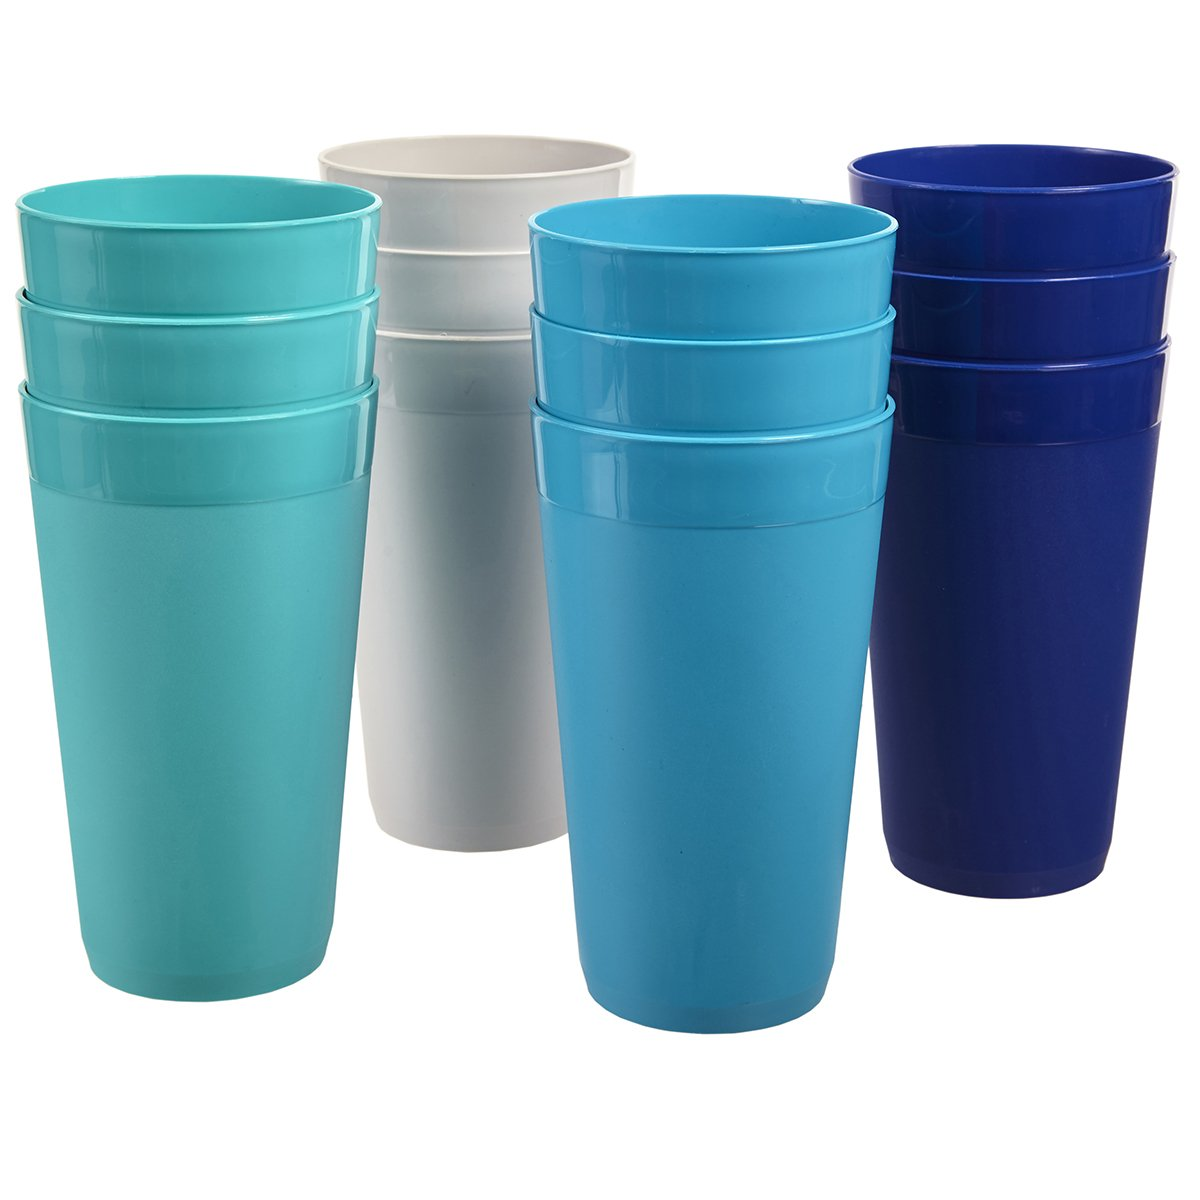 US Acrylic Newport 20-ounce Unbreakable Plastic Tumblers | set of 12 in 4 Coastal Colors